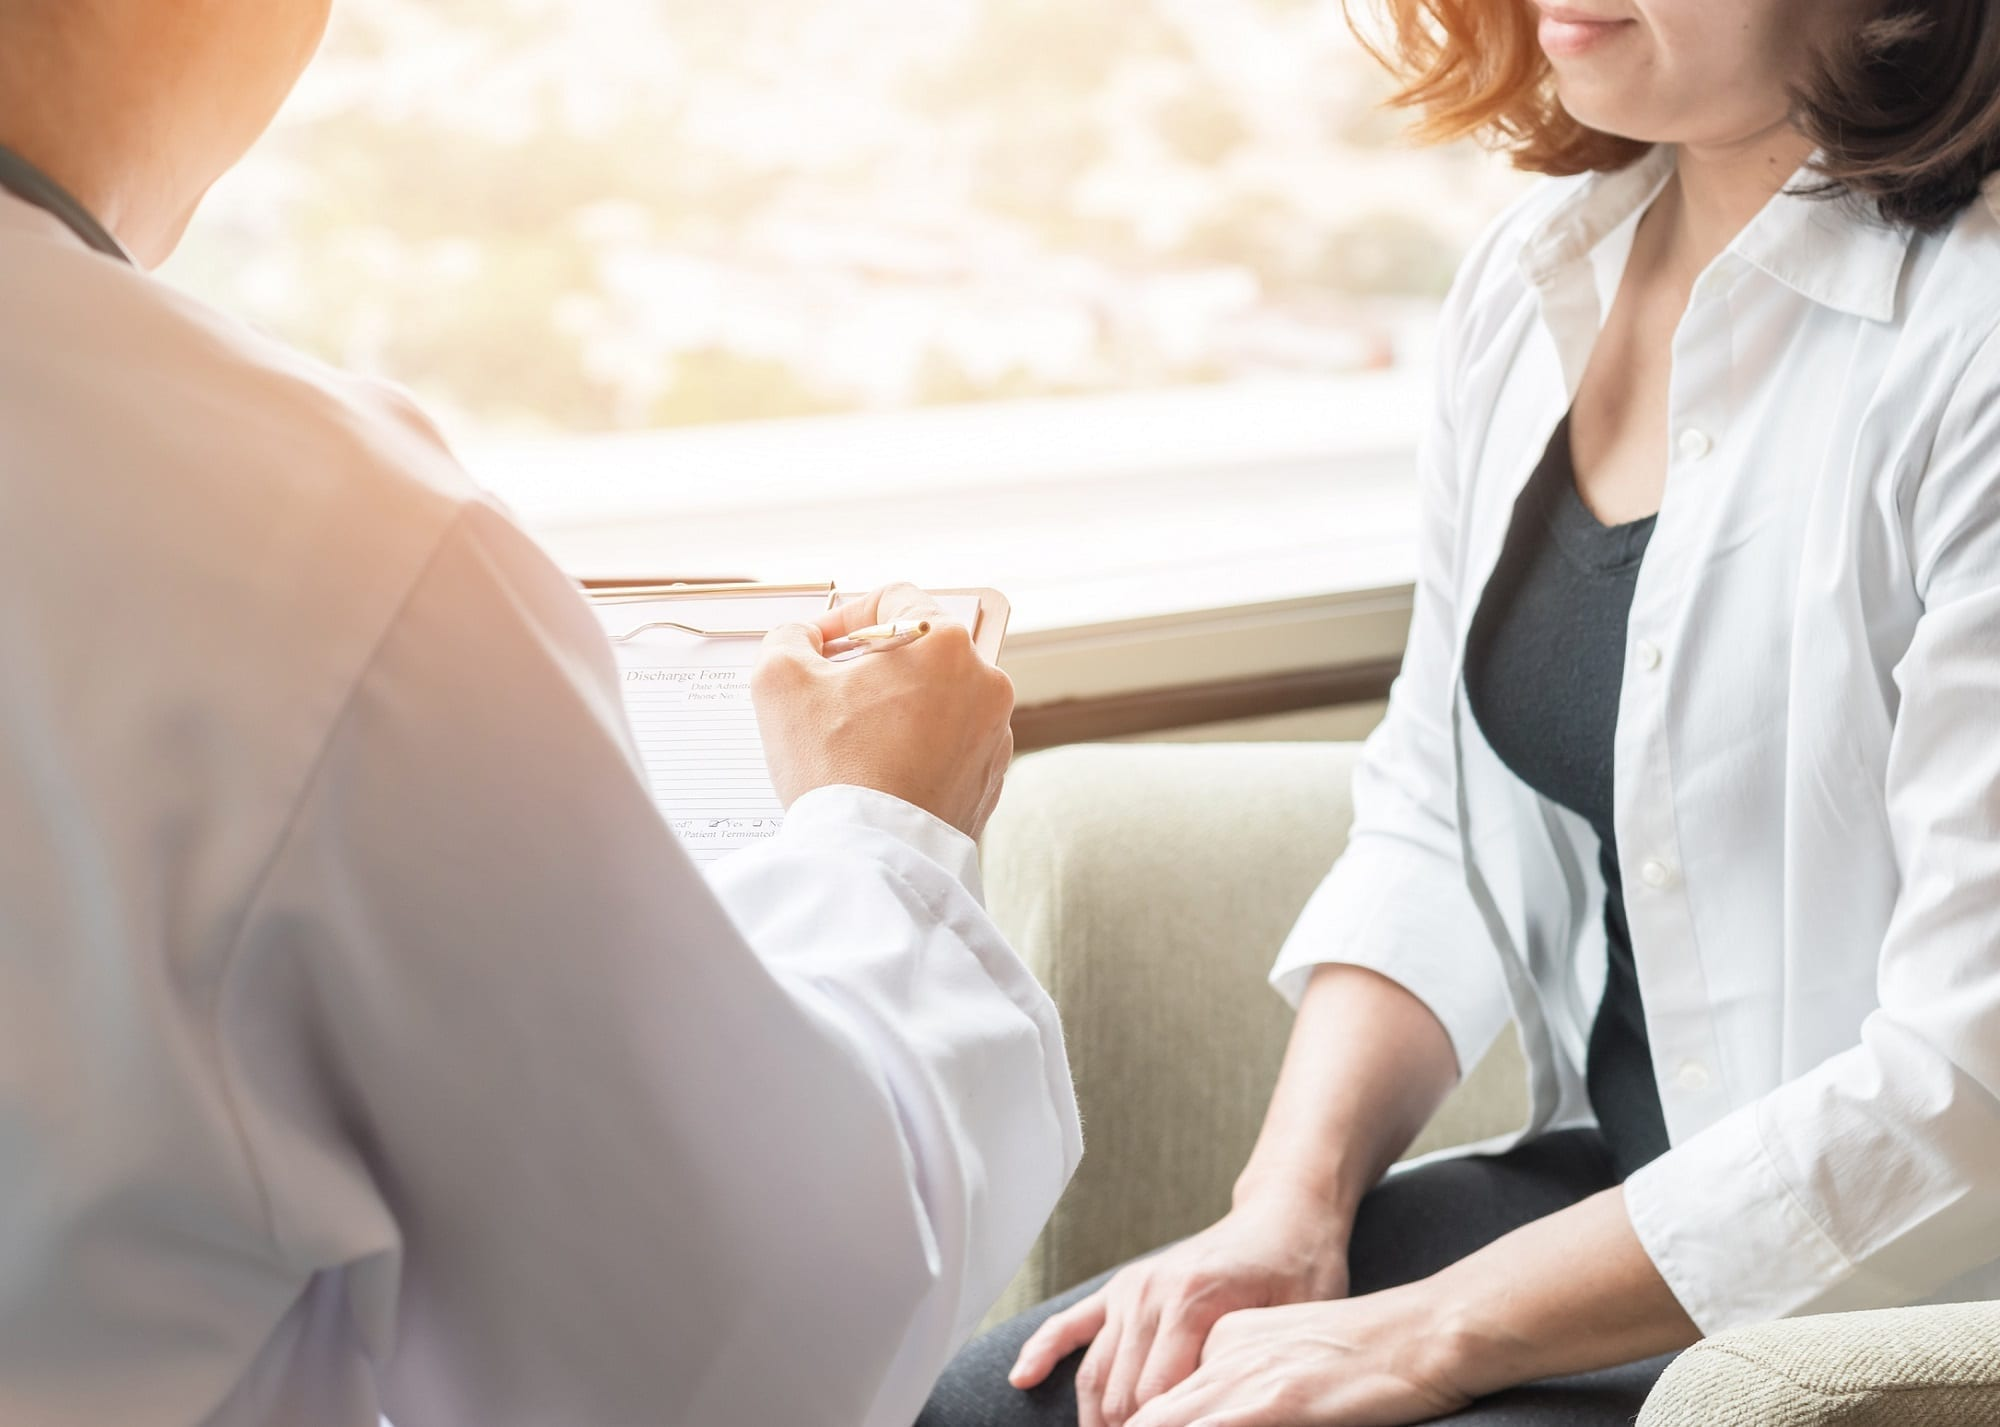 Female Doctor Consulting Female Patient Stock Photo